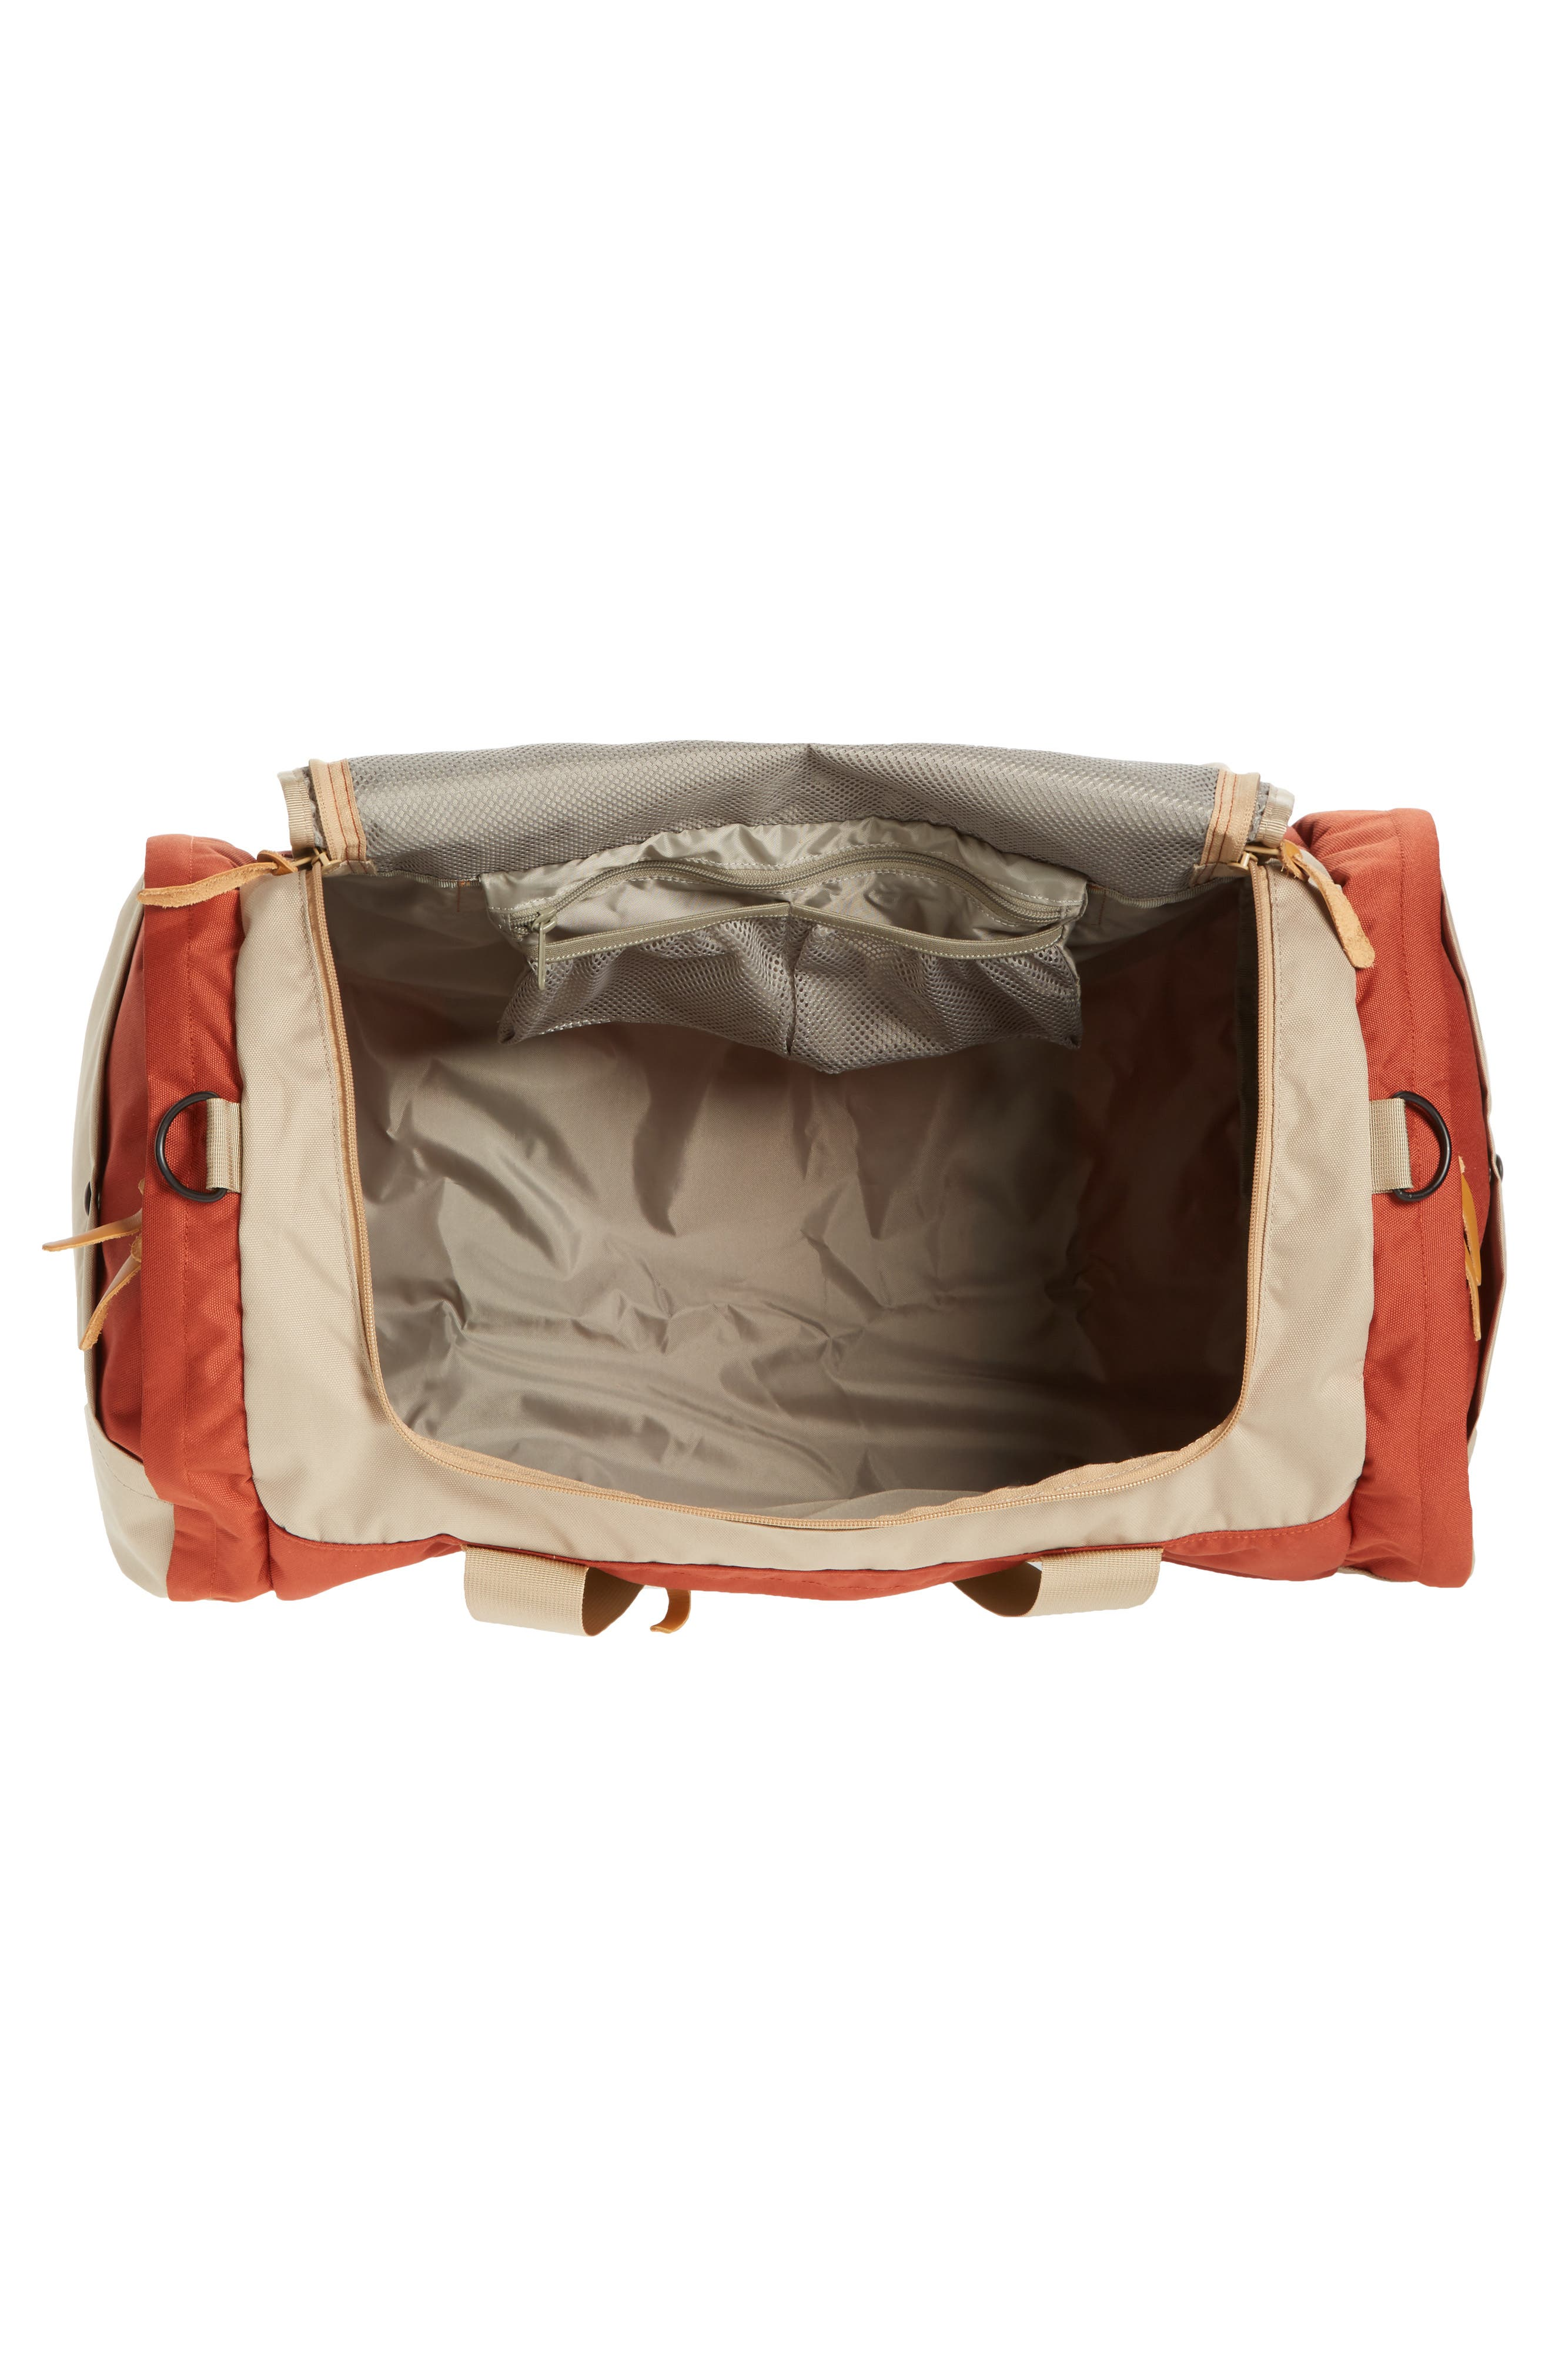 Arc Duffel Bag,                             Alternate thumbnail 4, color,                             Rust/ Tan